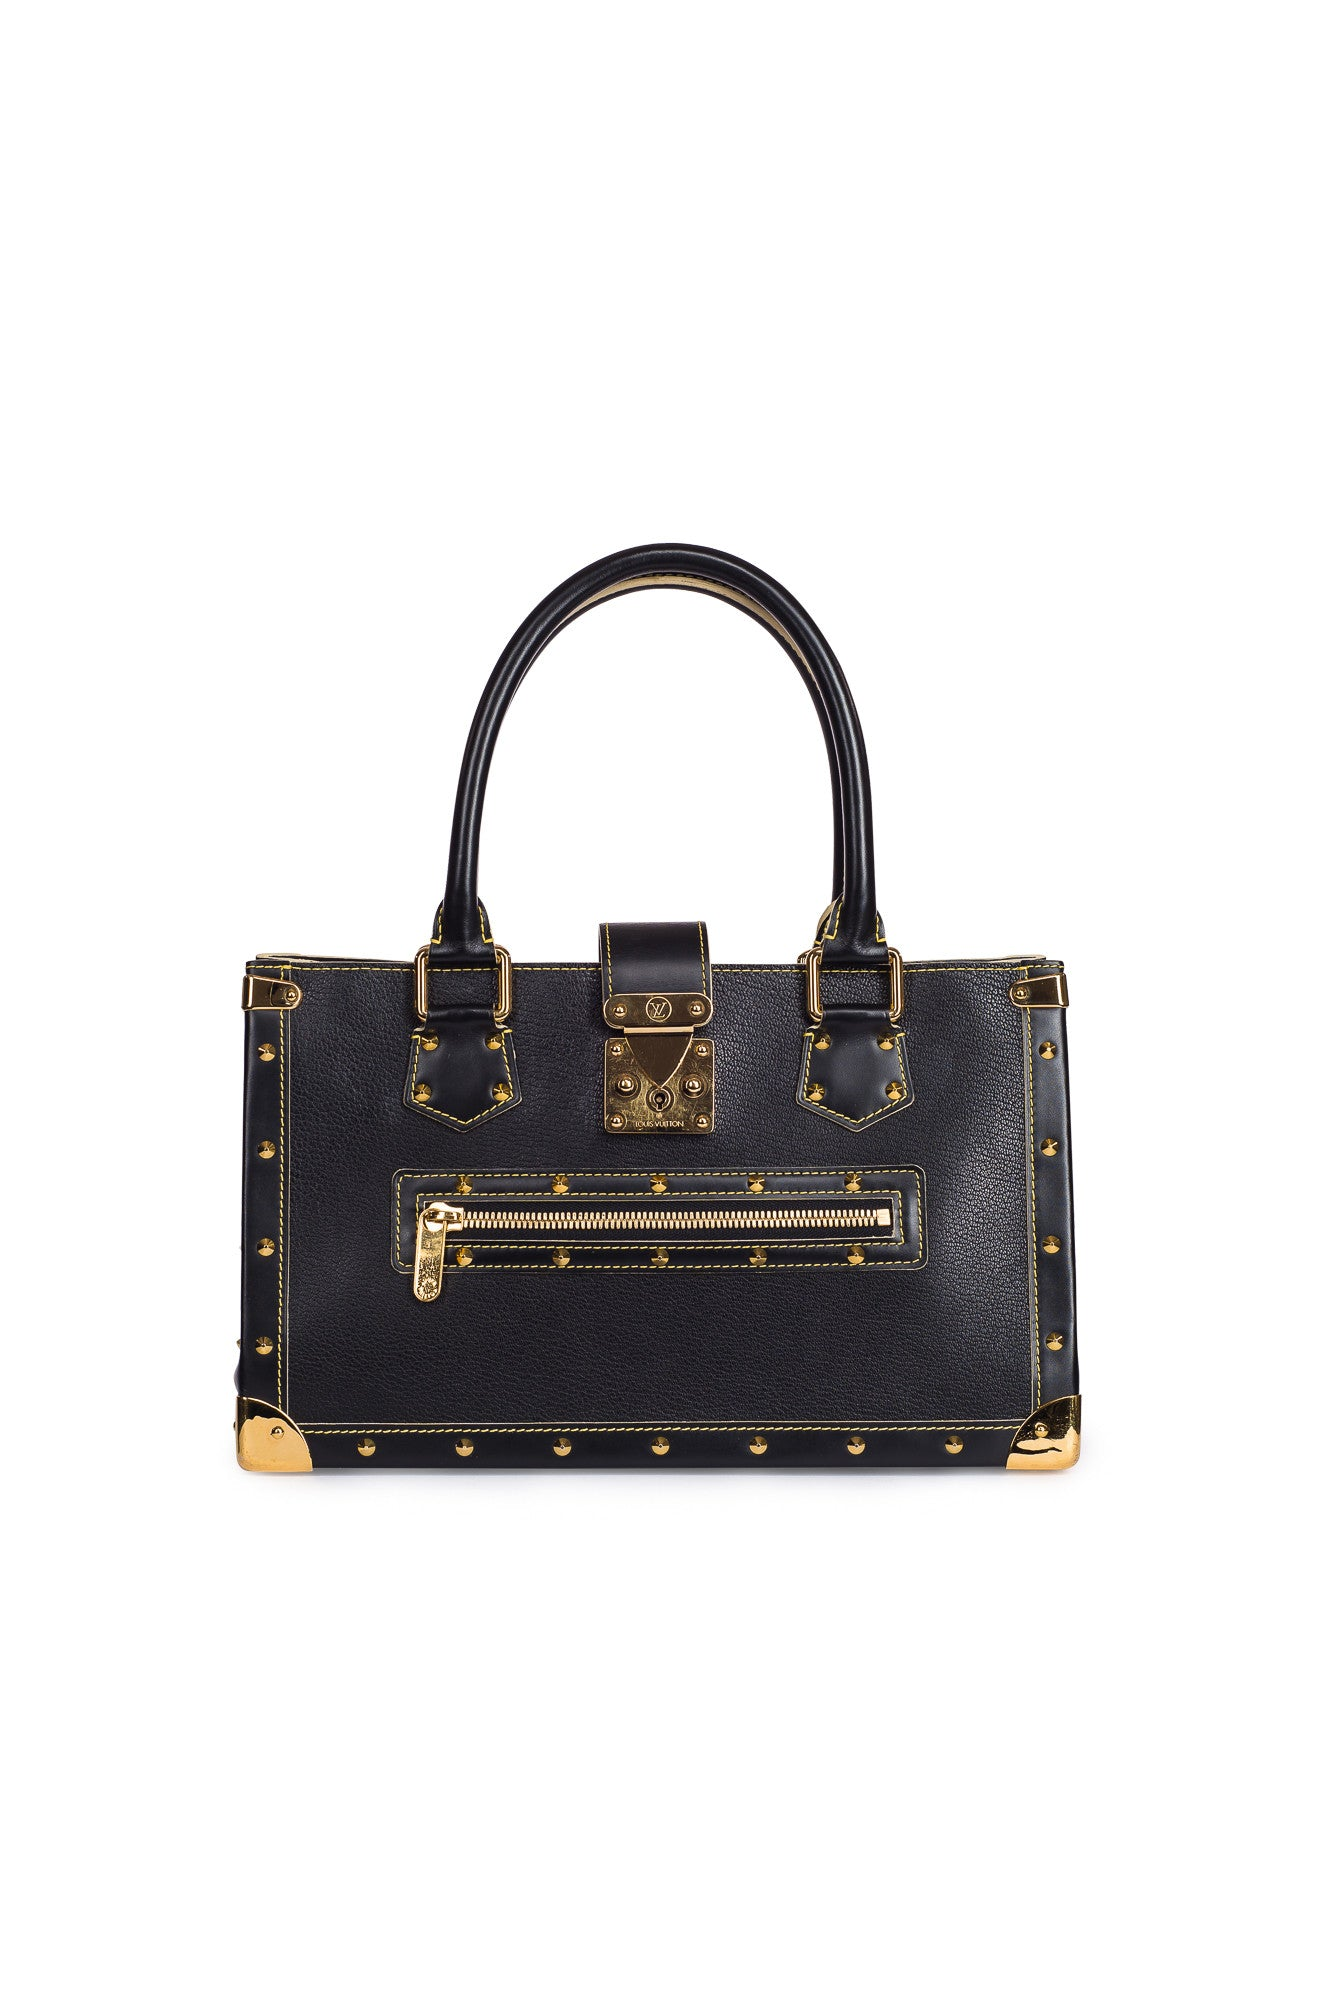 LOUIS VUITTON Suhali Le Fabuleux Bag